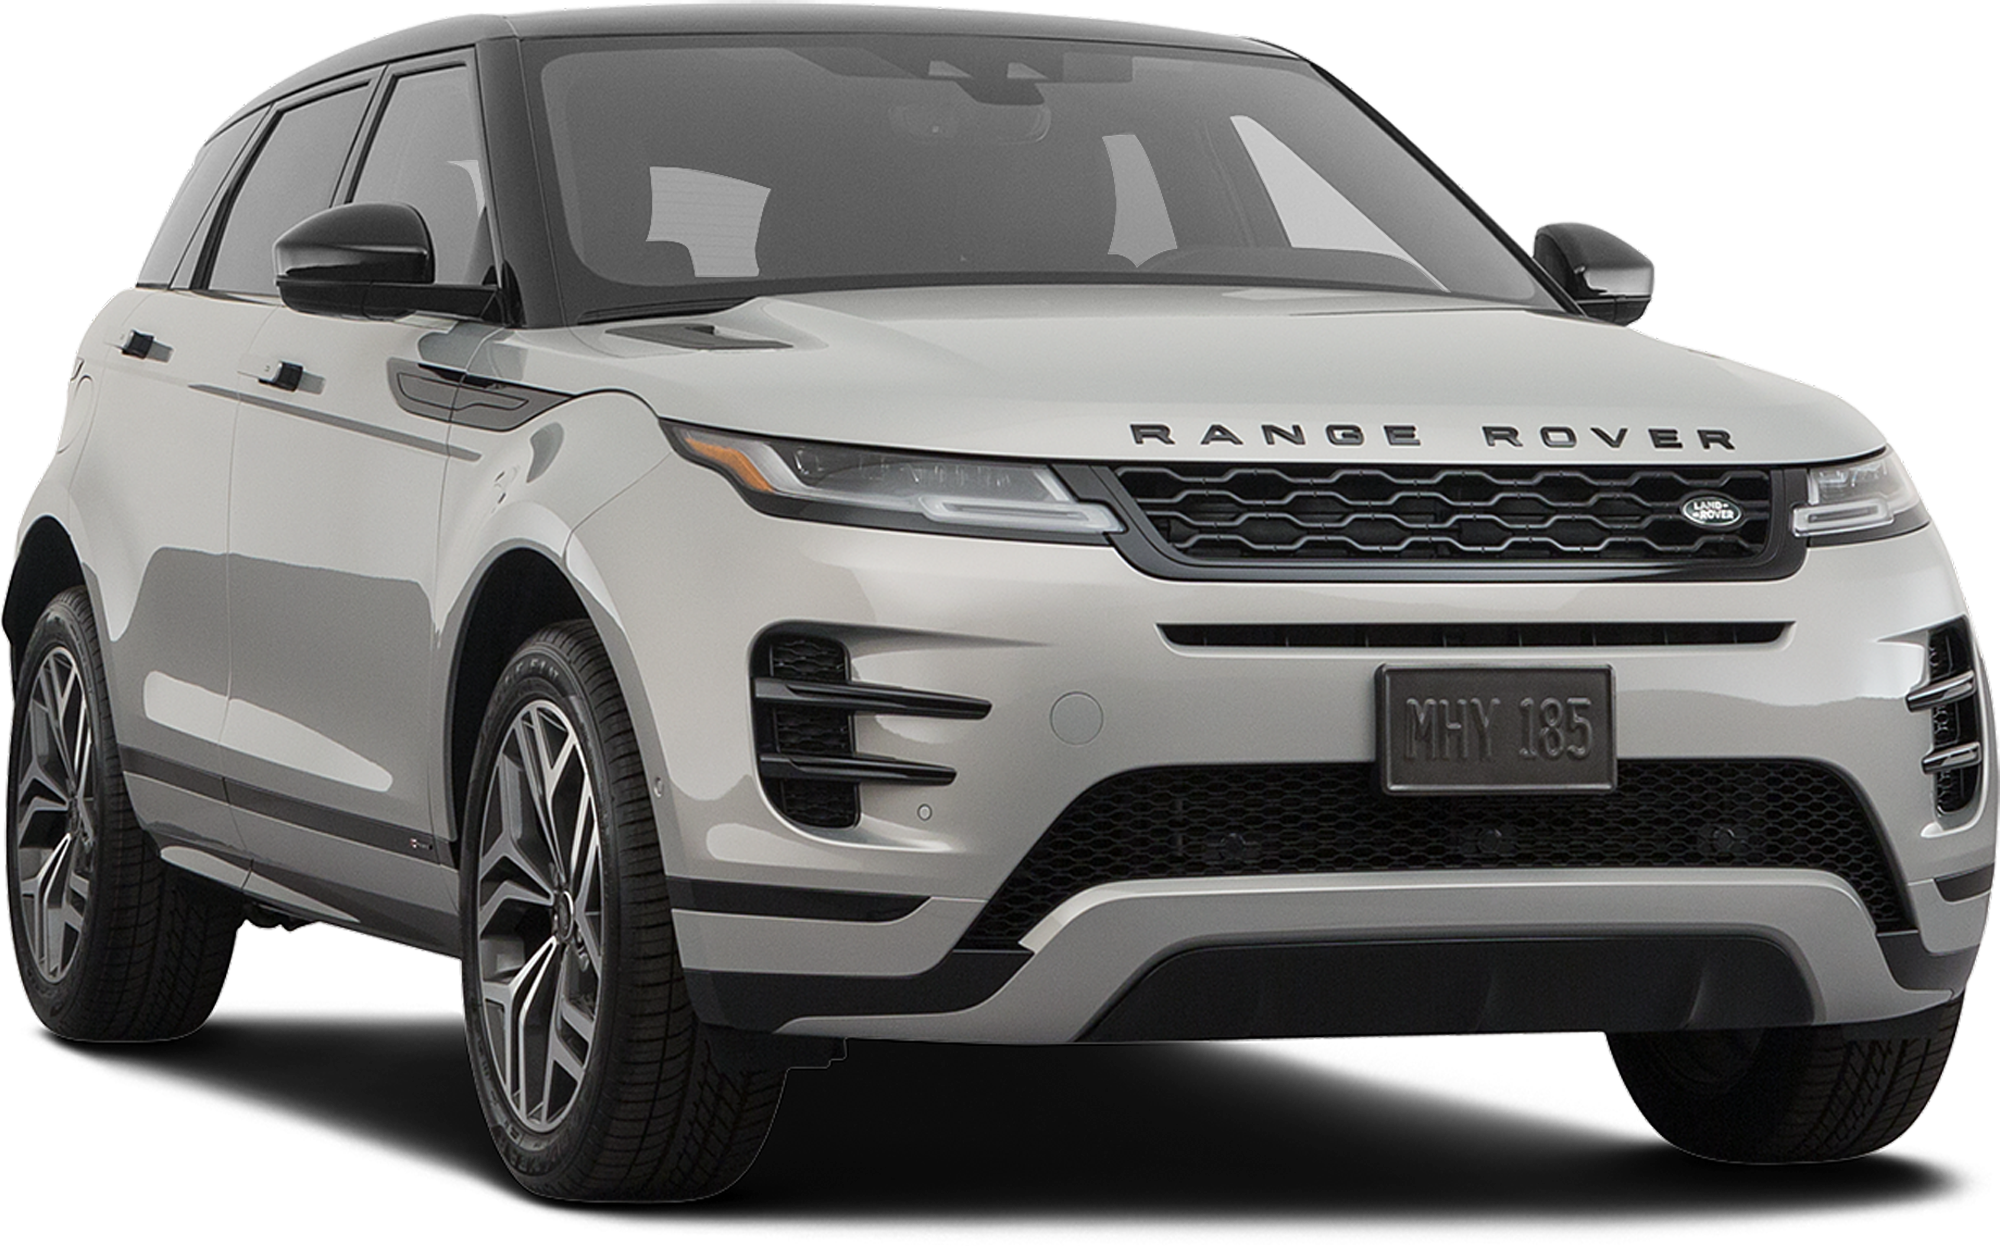 http://images.dealer.com/ddc/vehicles/2020/Land%20Rover/Range%20Rover%20Evoque/SUV/trim_S_e56eec/perspective/front-left/2020_24.png